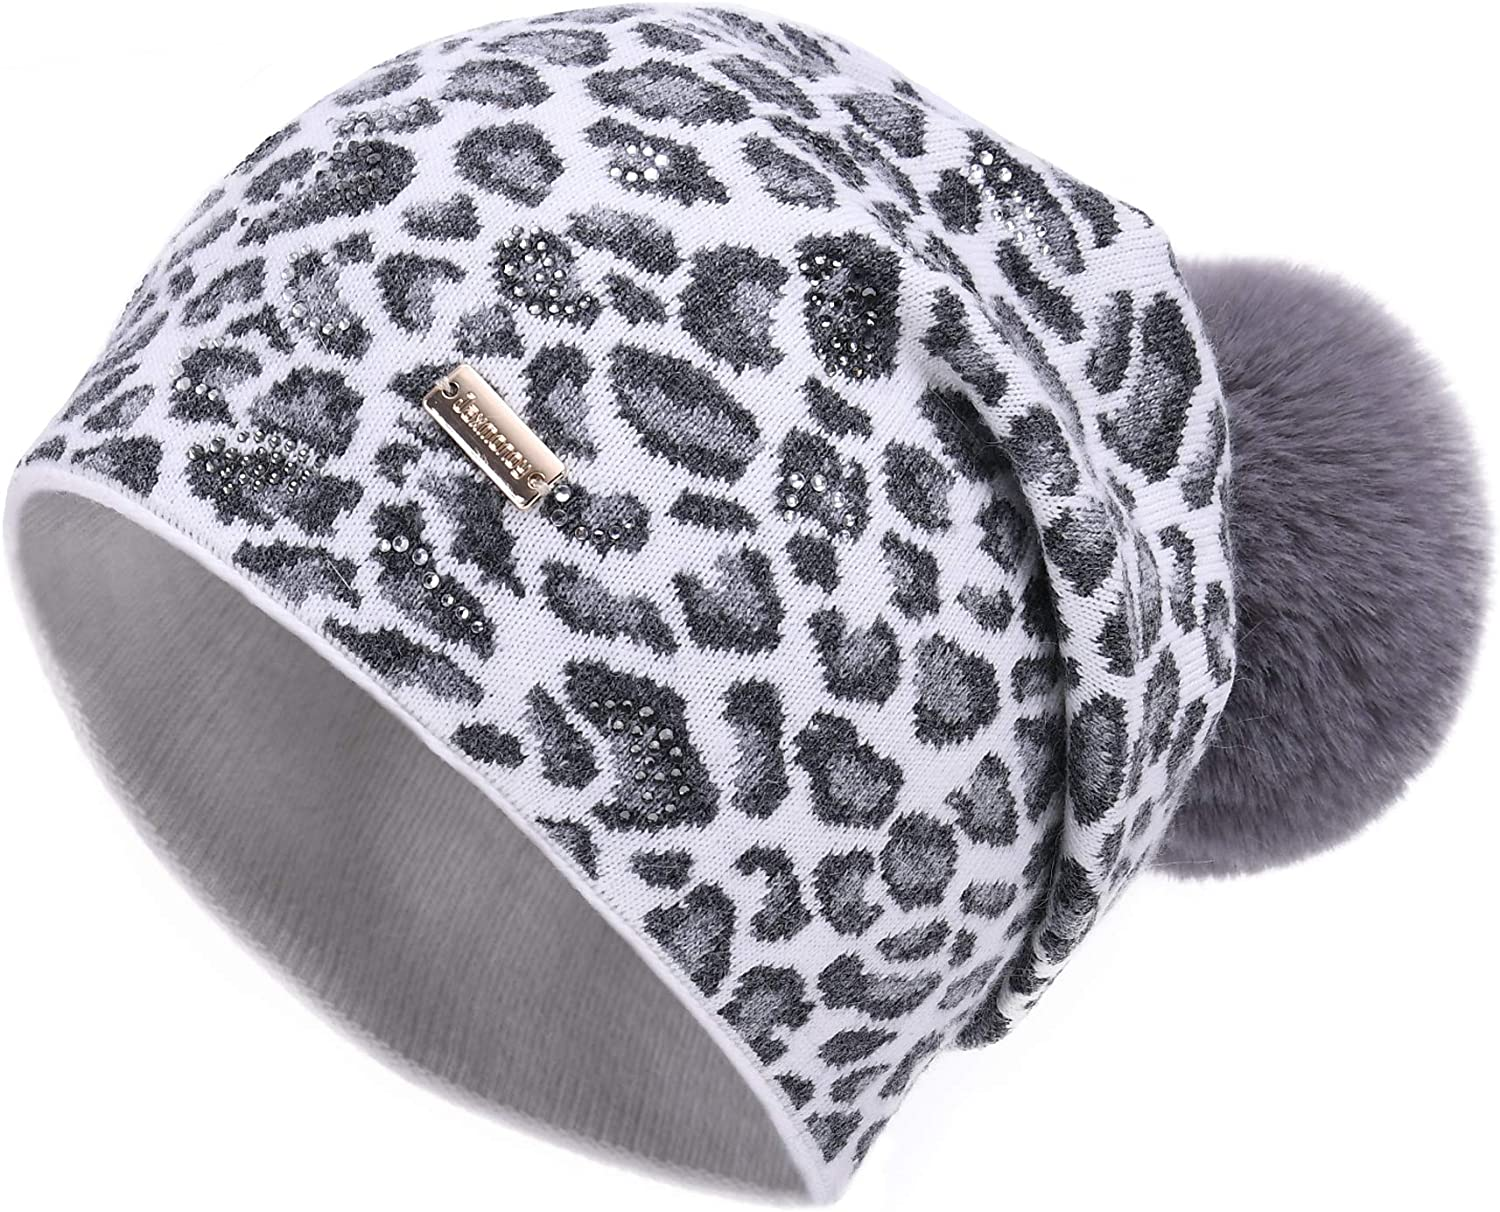 jaxmonoy Cashmere Wool sale Slouchy Max 87% OFF Knitted Beanie for Women S Winter